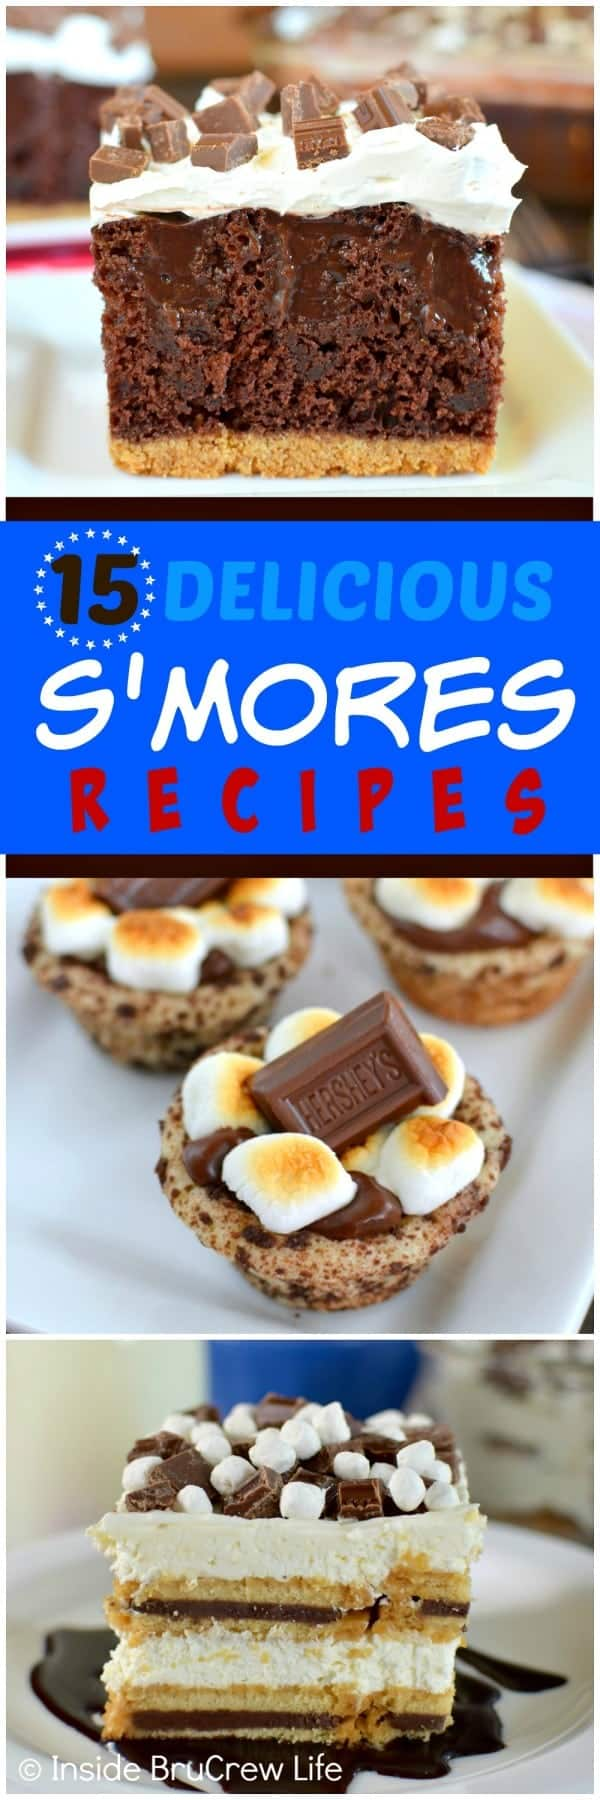 15 Delicious S'mores Recipes - chocolate, marshmallow, and graham cracker is a delicious combo in any dessert recipe. Here are 15 ideas to get you started!